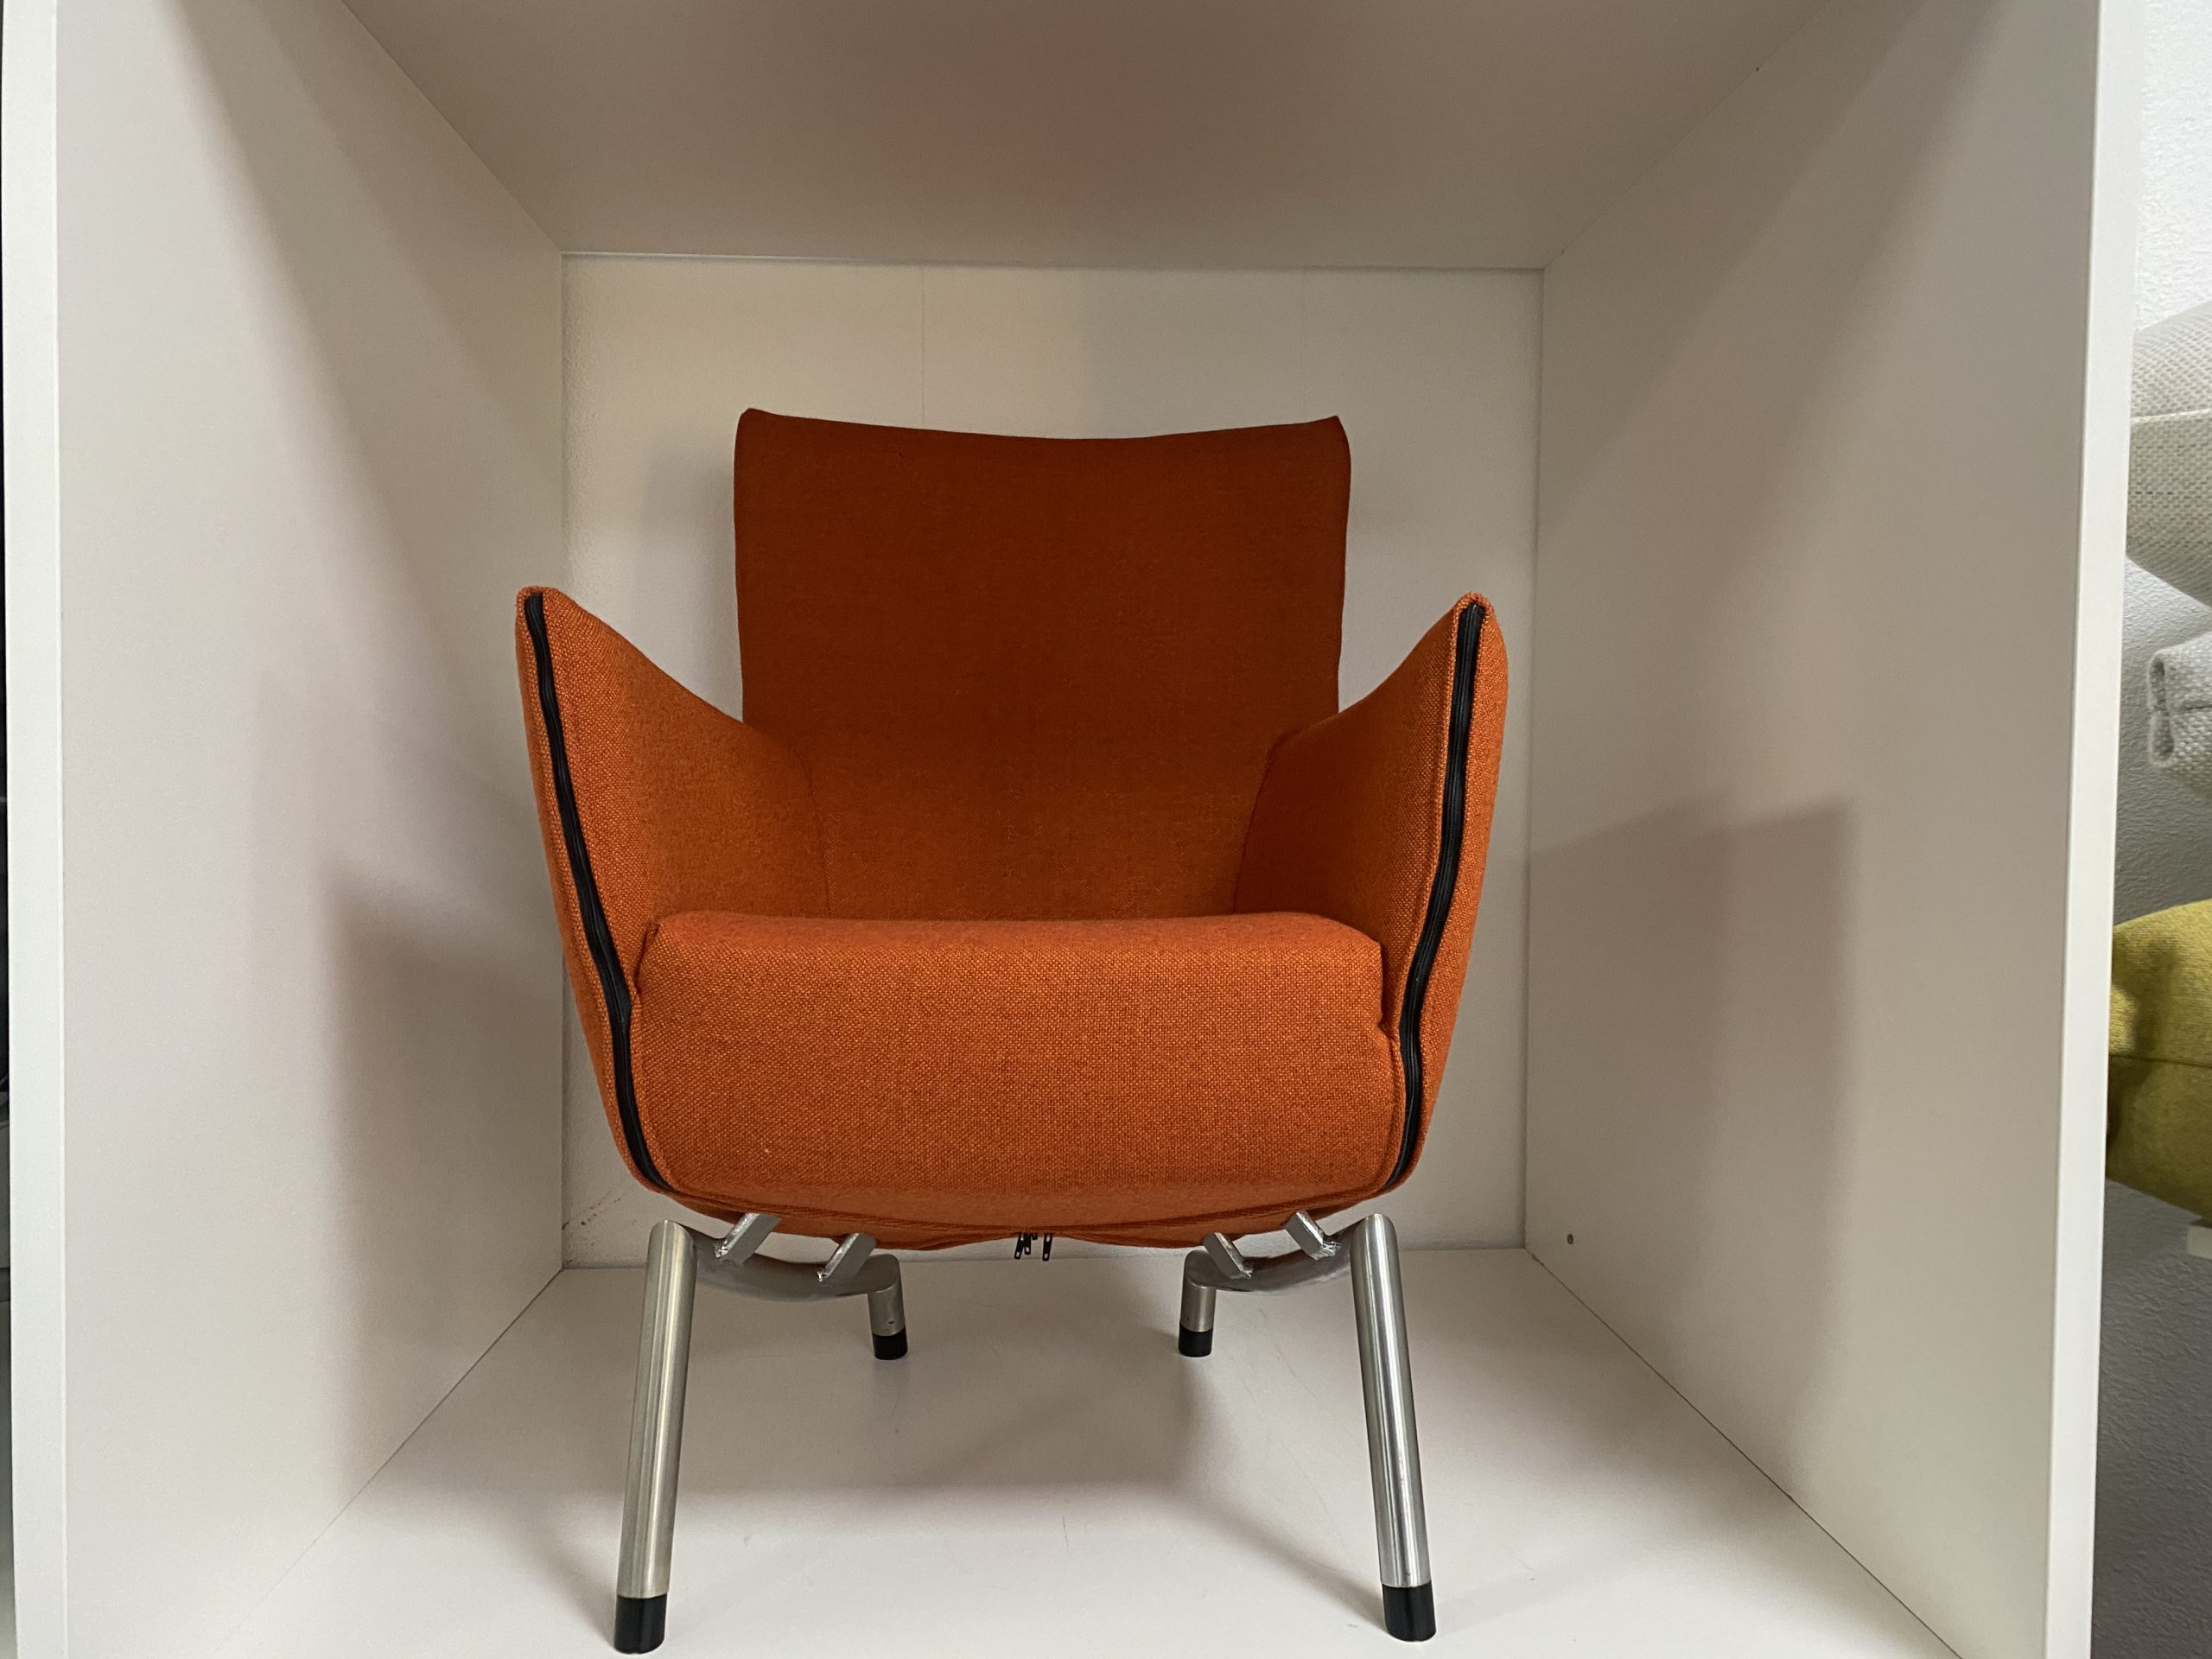 Label Foxxy fauteuil oranje  - Refurbished